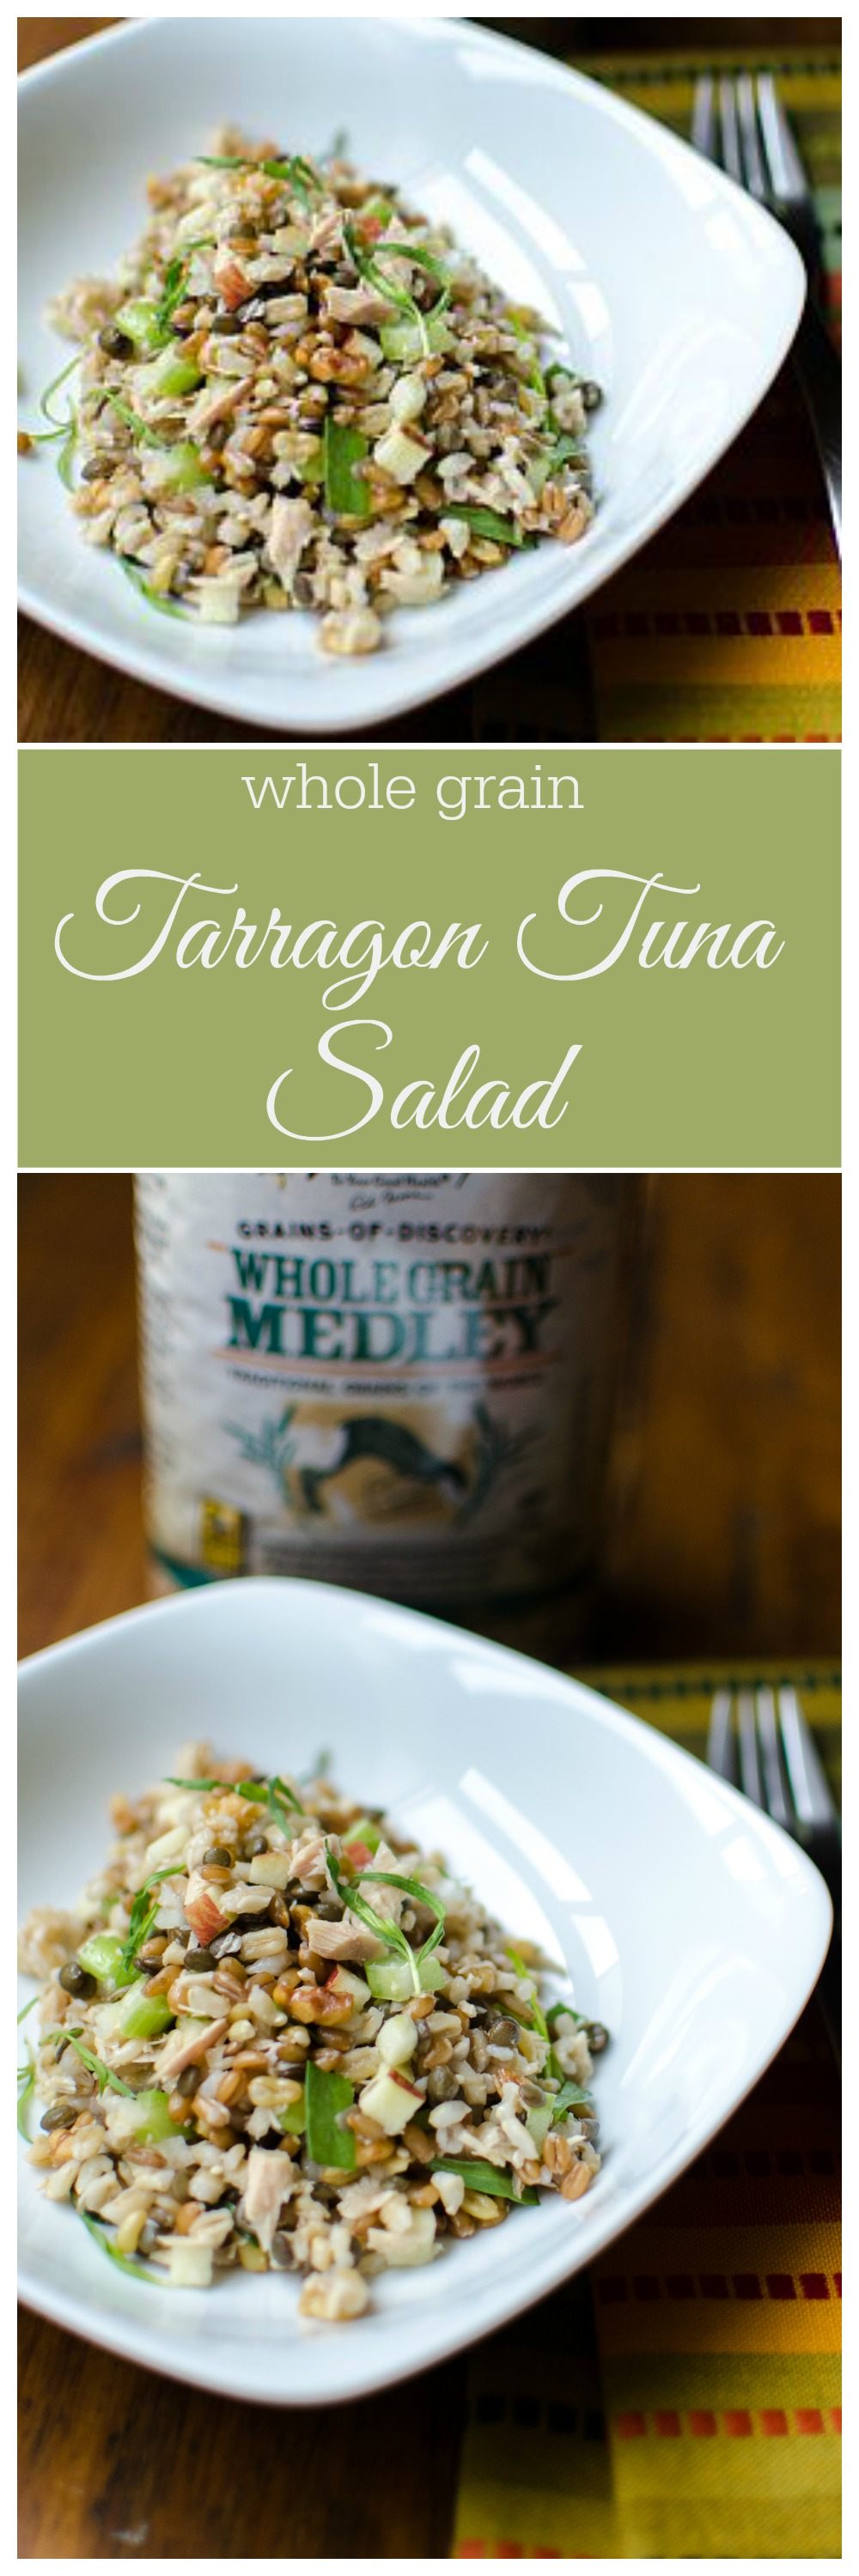 Tarragon Tuna Salad- a zippy, whole grain salad perfect for hot summer nights. // Bob's Red Mill